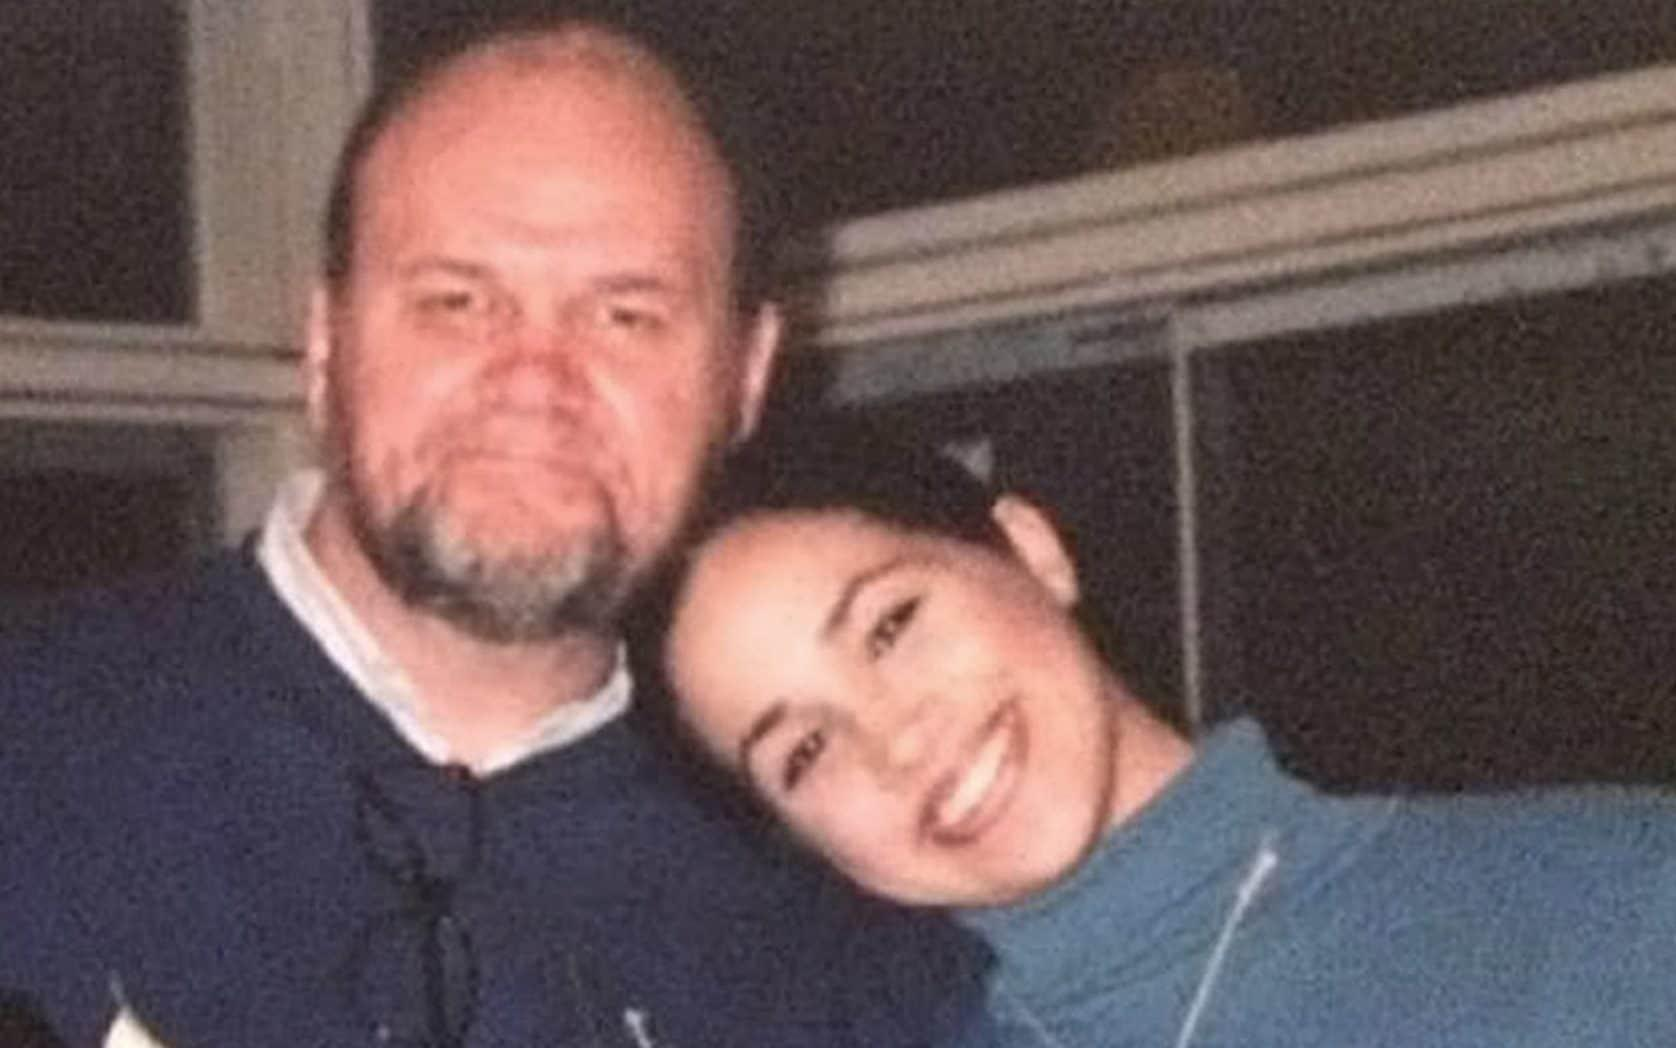 Meghan Markle confirms her father Thomas Markle will not attend royal wedding as he needs 'space'